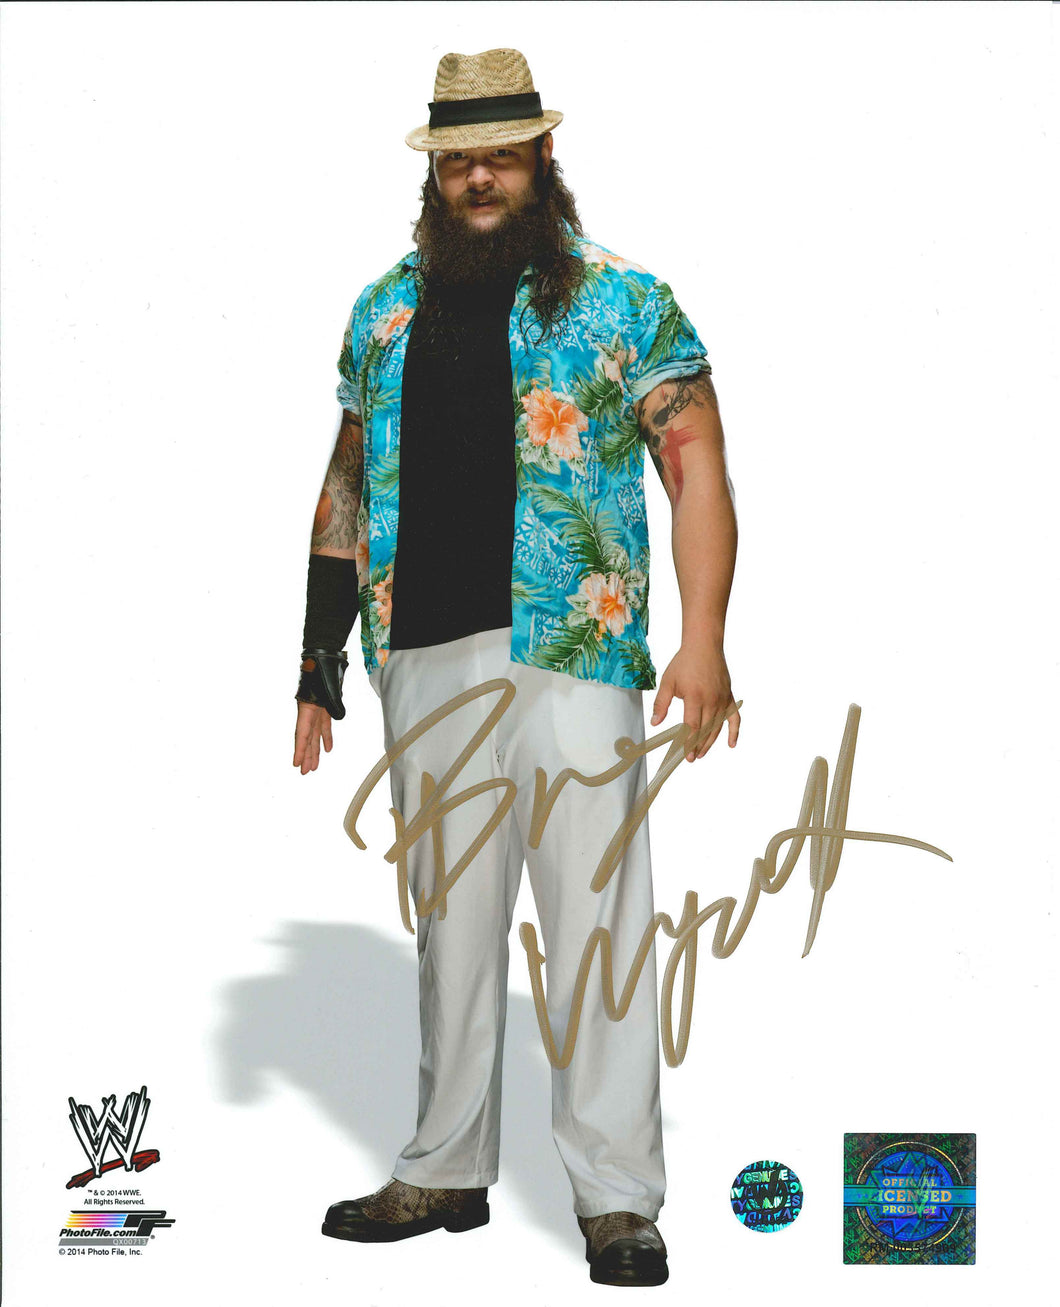 Bray Wyatt Signed WWE Photo